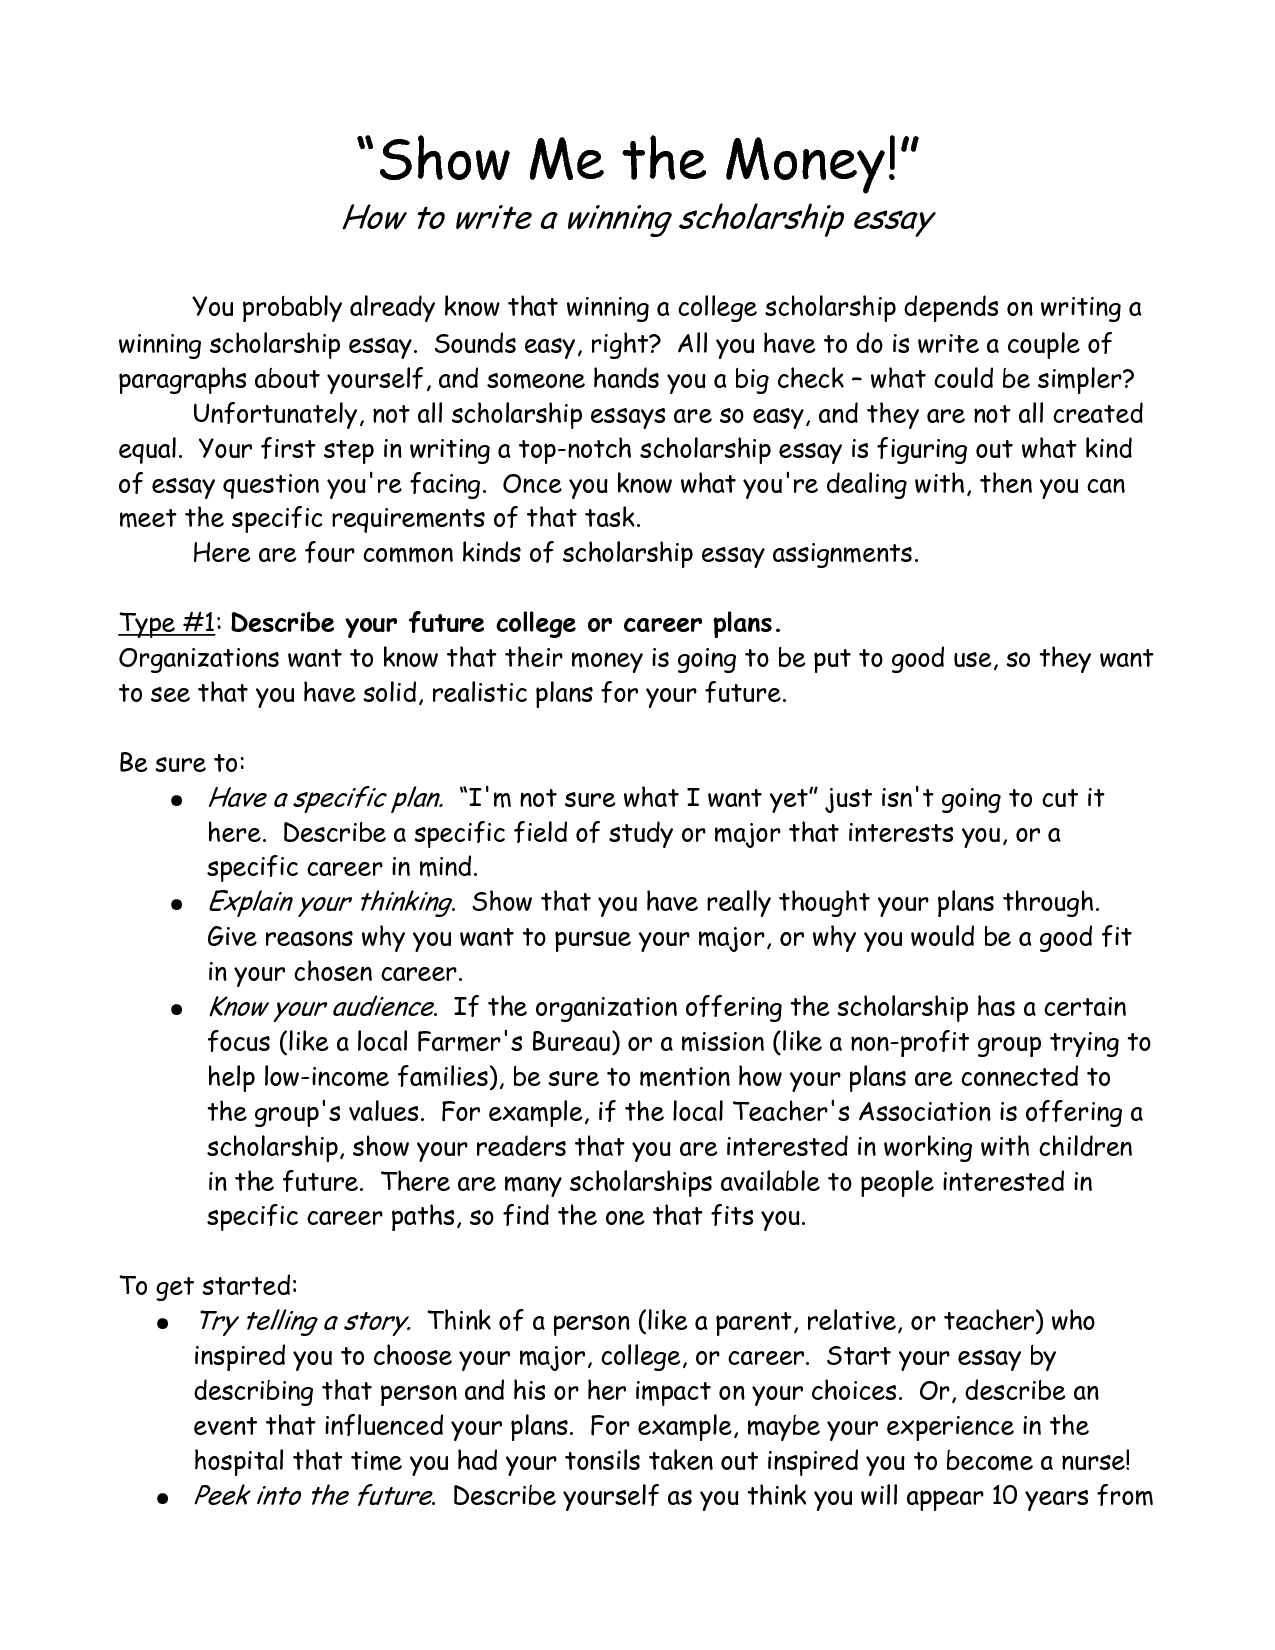 002 Essay Example Scholarships With Singular Essays Without Writing For High School Juniors Class Of 2020 No 2019 Full